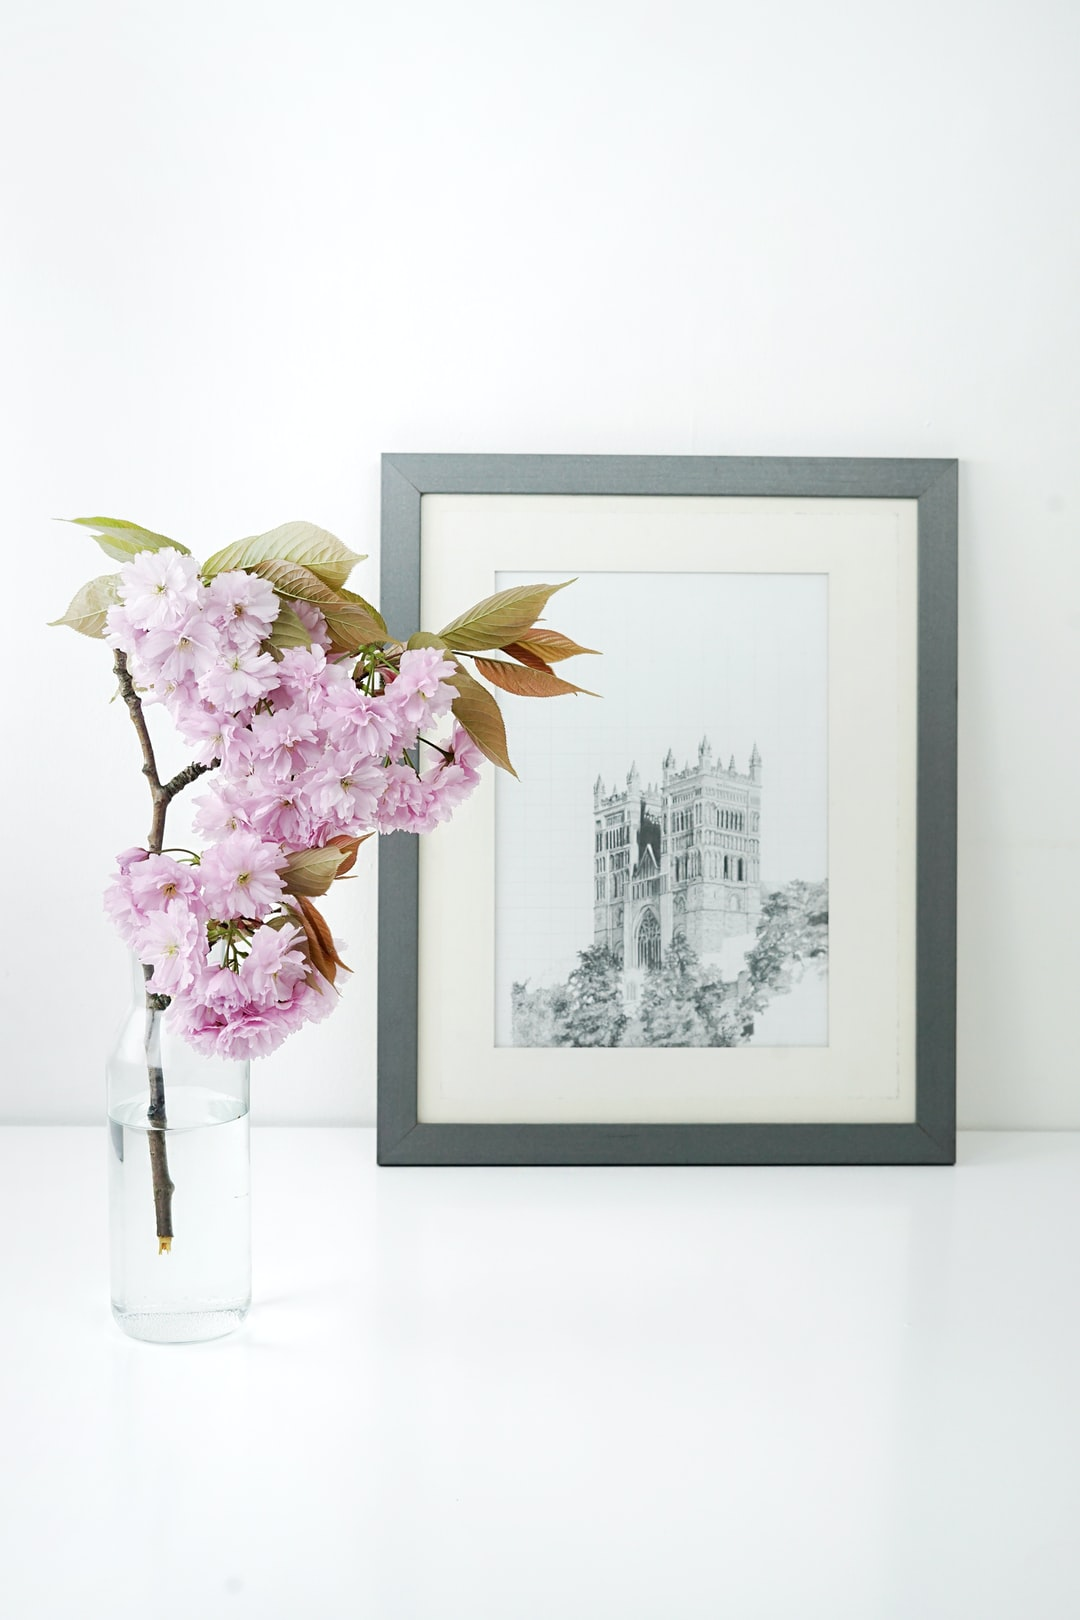 just a quick snap of my flatmate's drawing of a church, next to a pink blossom